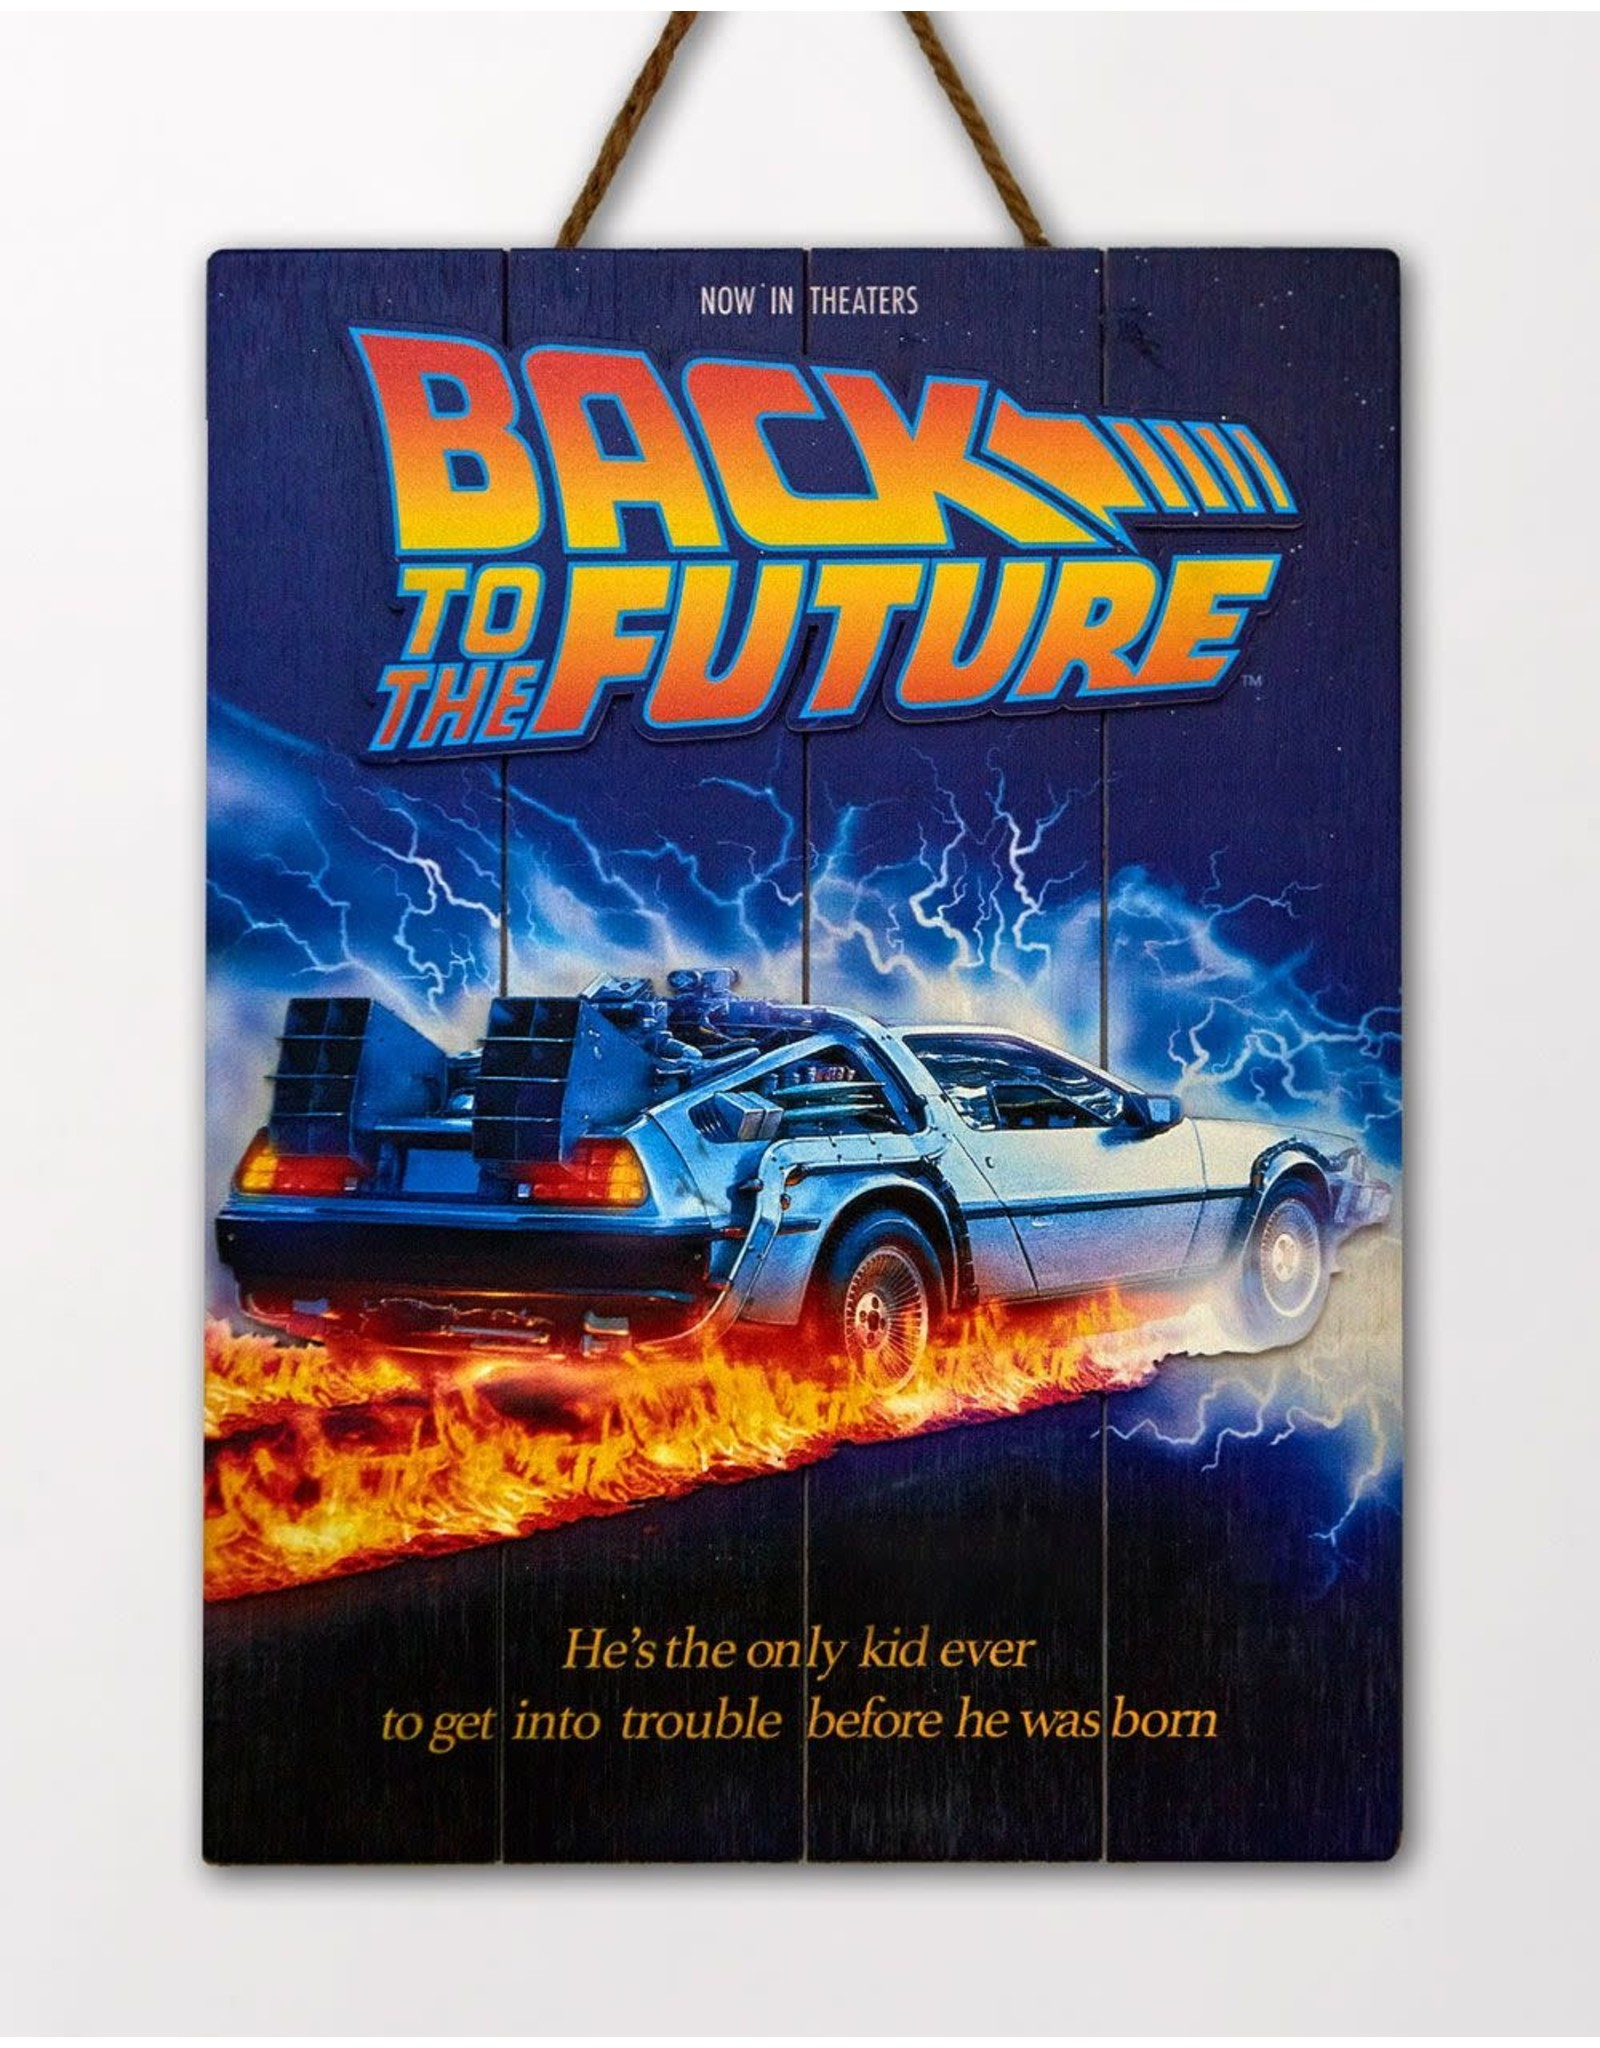 Doctor Collector BACK TO THE FUTURE WoodArts 3D Wooden Wall Art 30 x 40cm - DeLorean